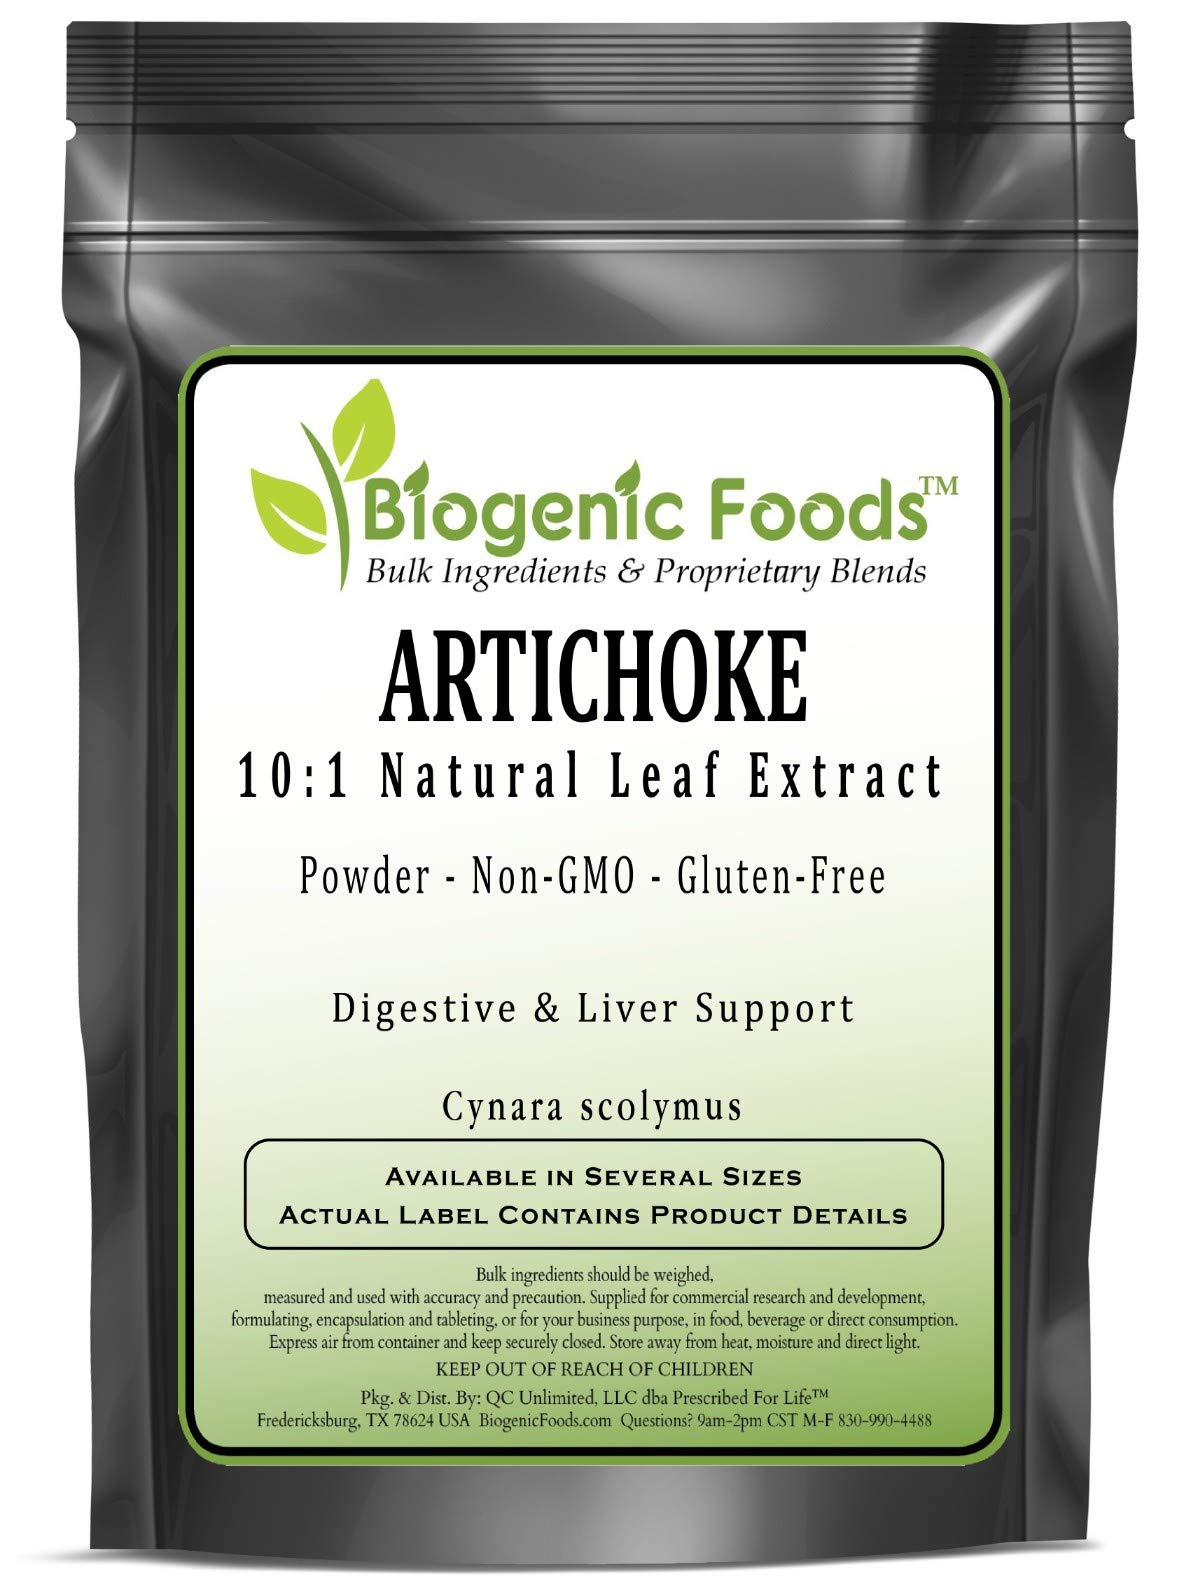 Artichoke - 10:1 Natural Leaf Extract Powder (Cynara scolymus), 10 kg